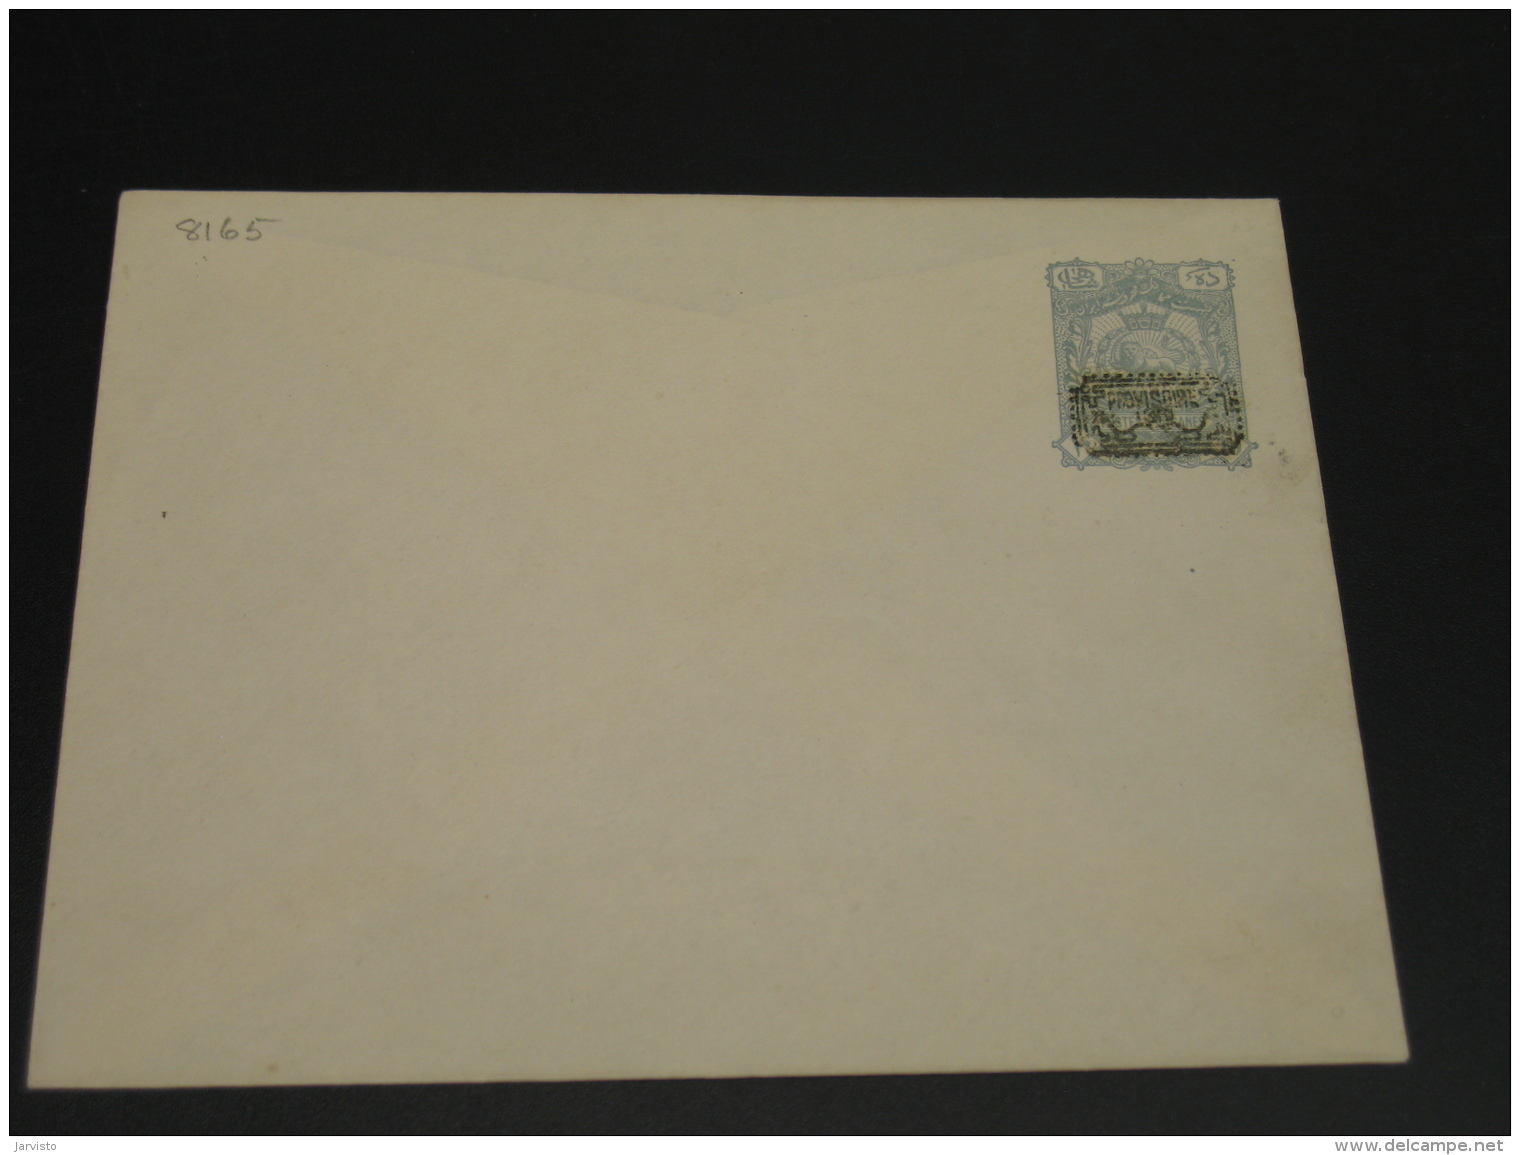 Iran Old Mint Stationery Cover *8165 - Iran